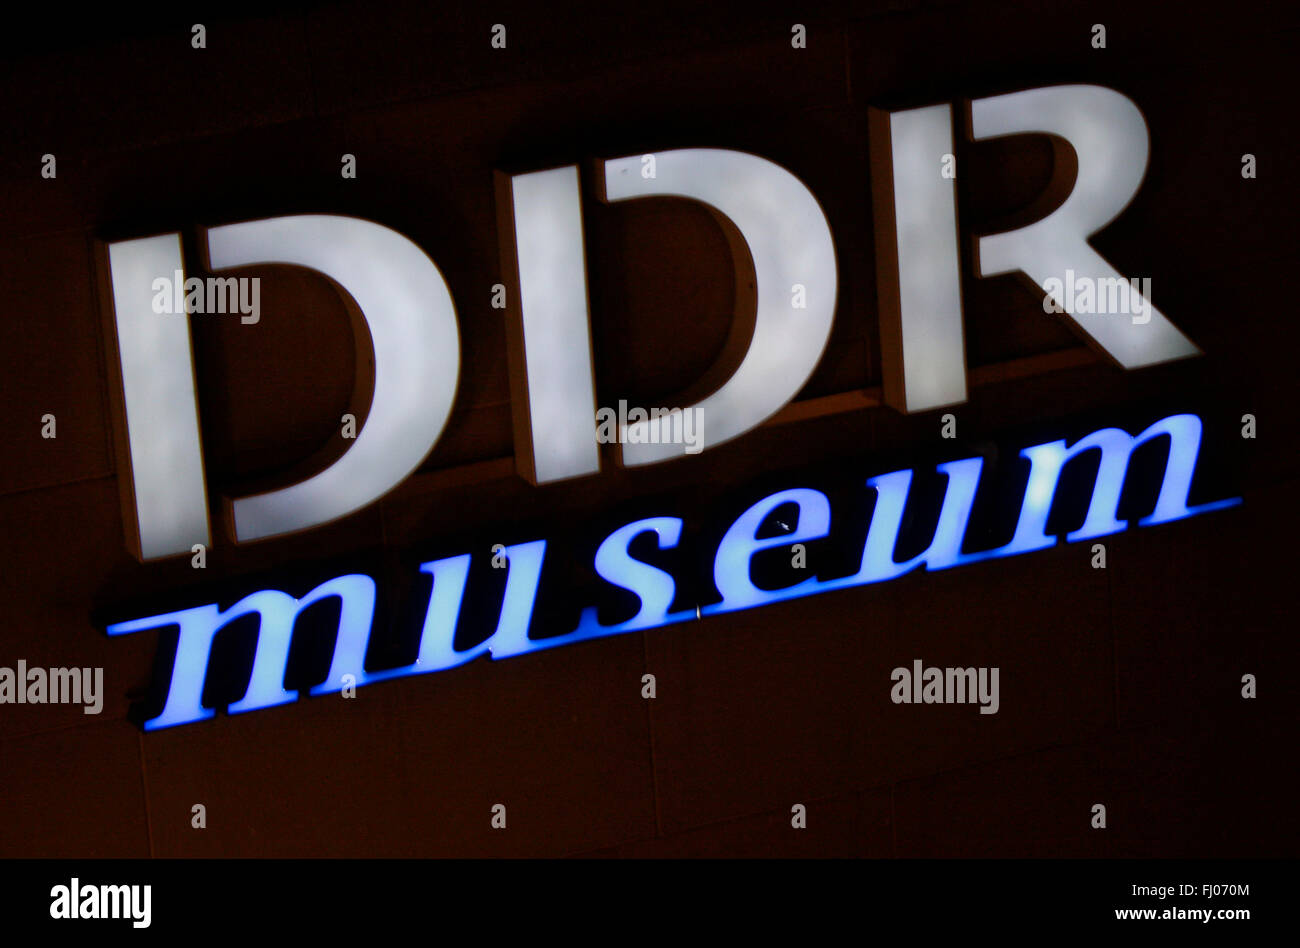 "Markenname: ""DDR Museum"", Berlin. Stock Photo"